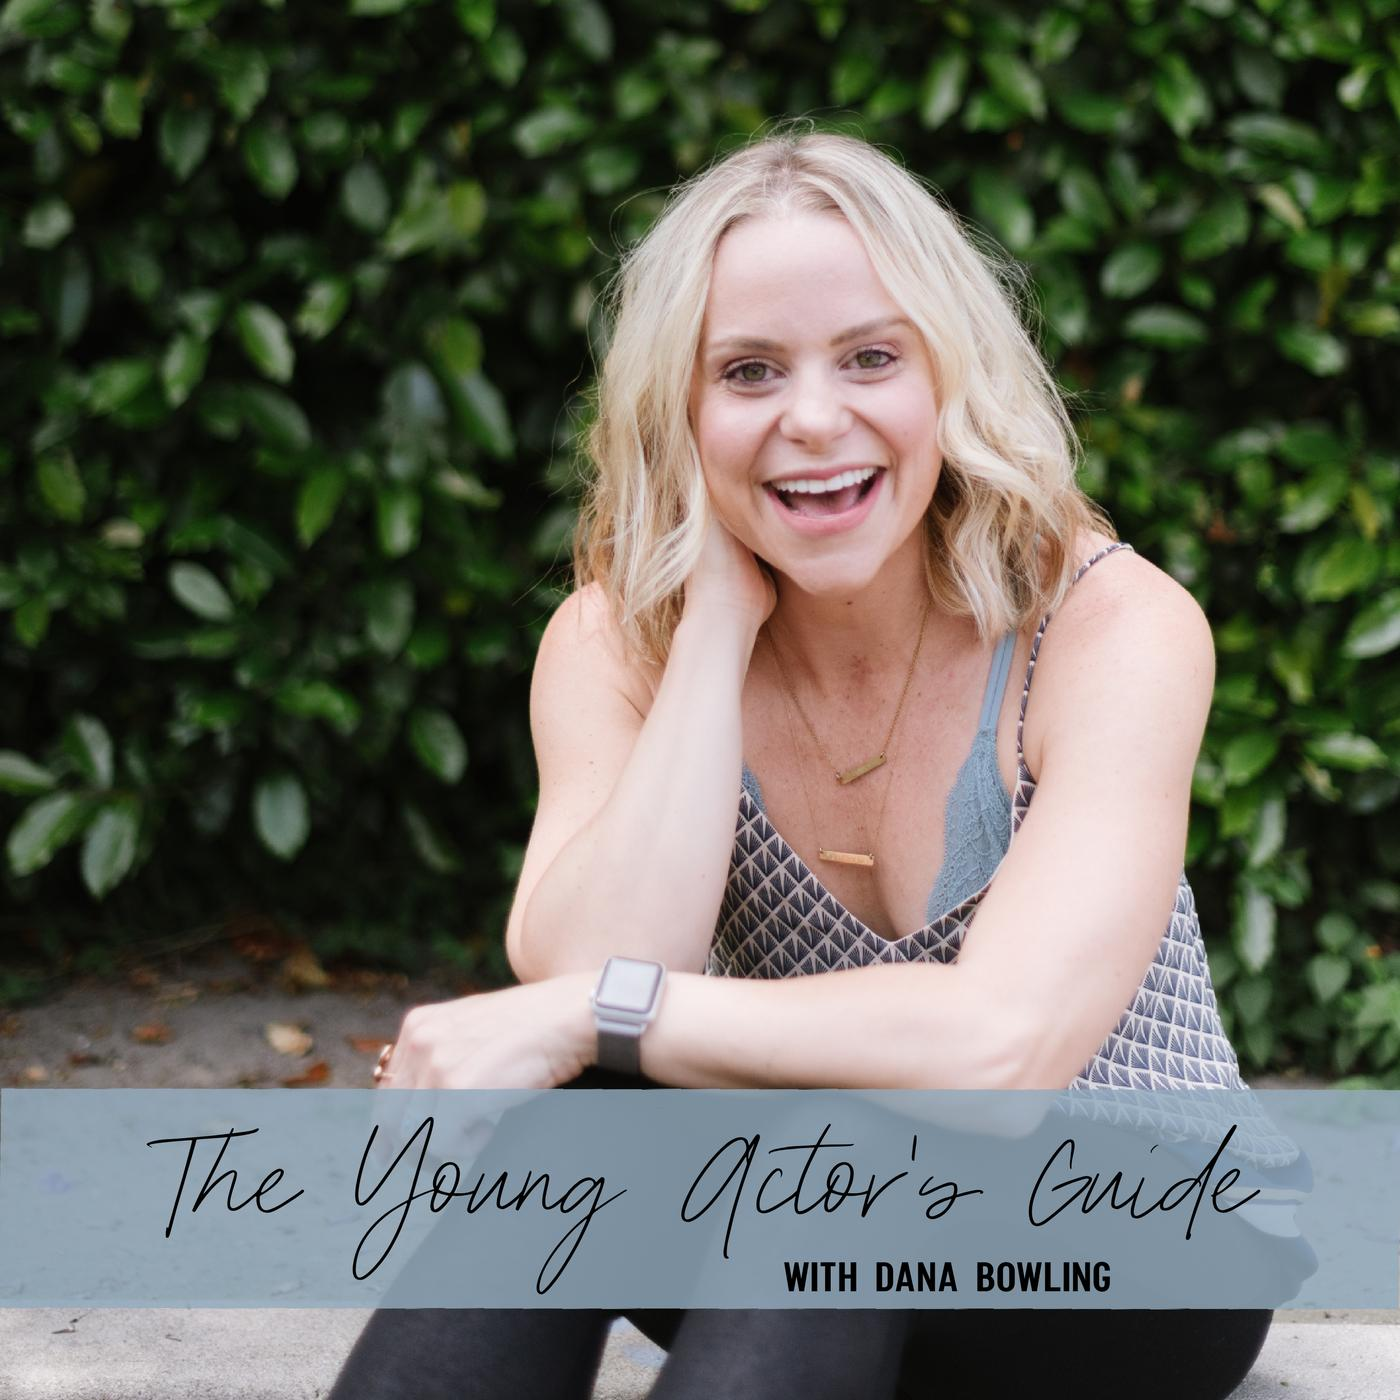 The Young Actor's Guide (podcast) - Dana Bowling | Listen Notes